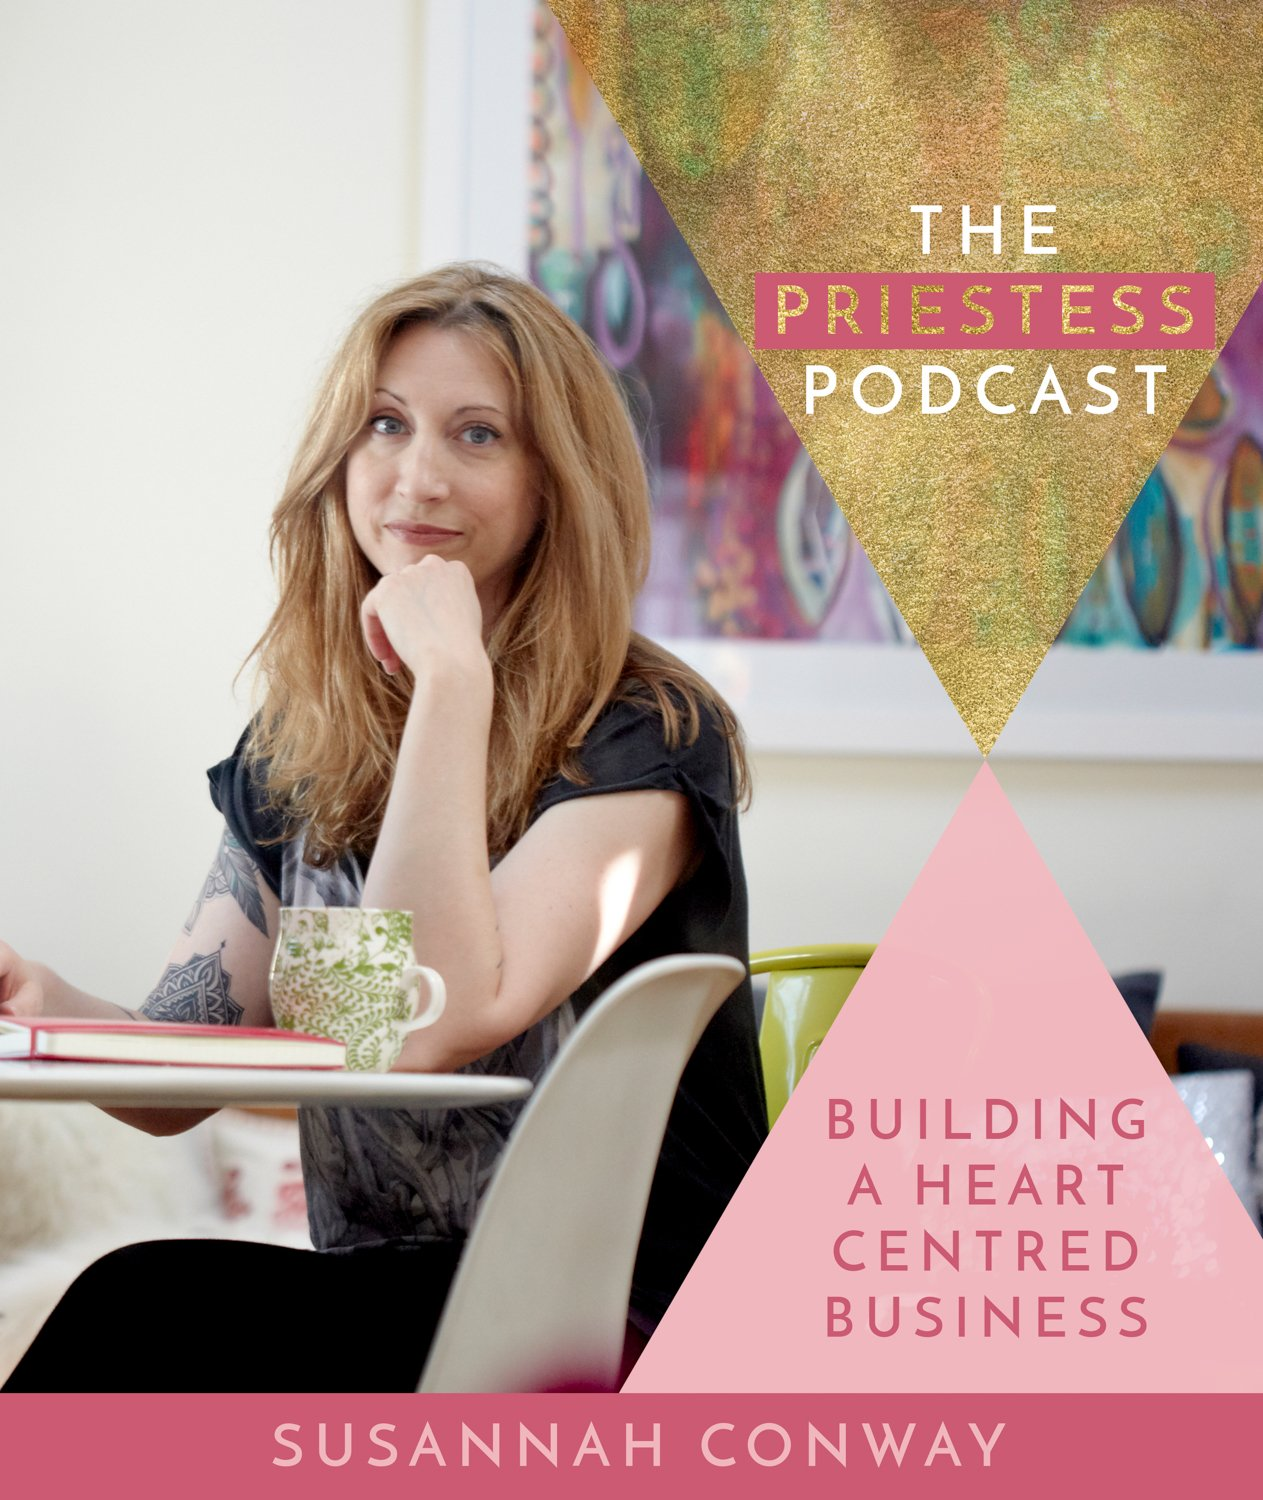 Susannah Conway on Building a Heart Centred Business